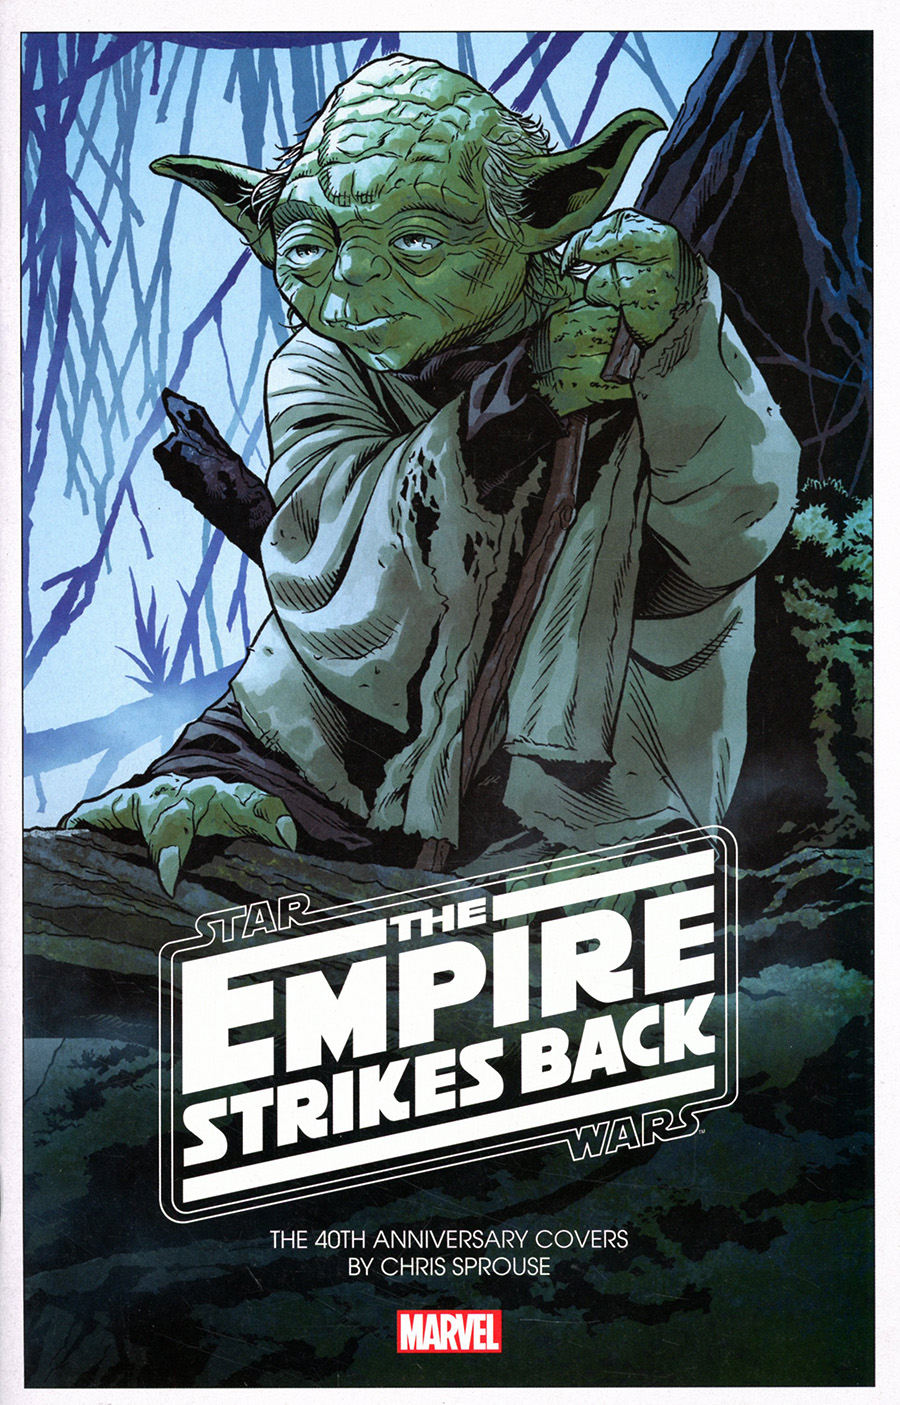 Star Wars Empire Strikes Back 40th Anniversary Covers By Chris Sprouse Cover A Regular Chris Sprouse Cover